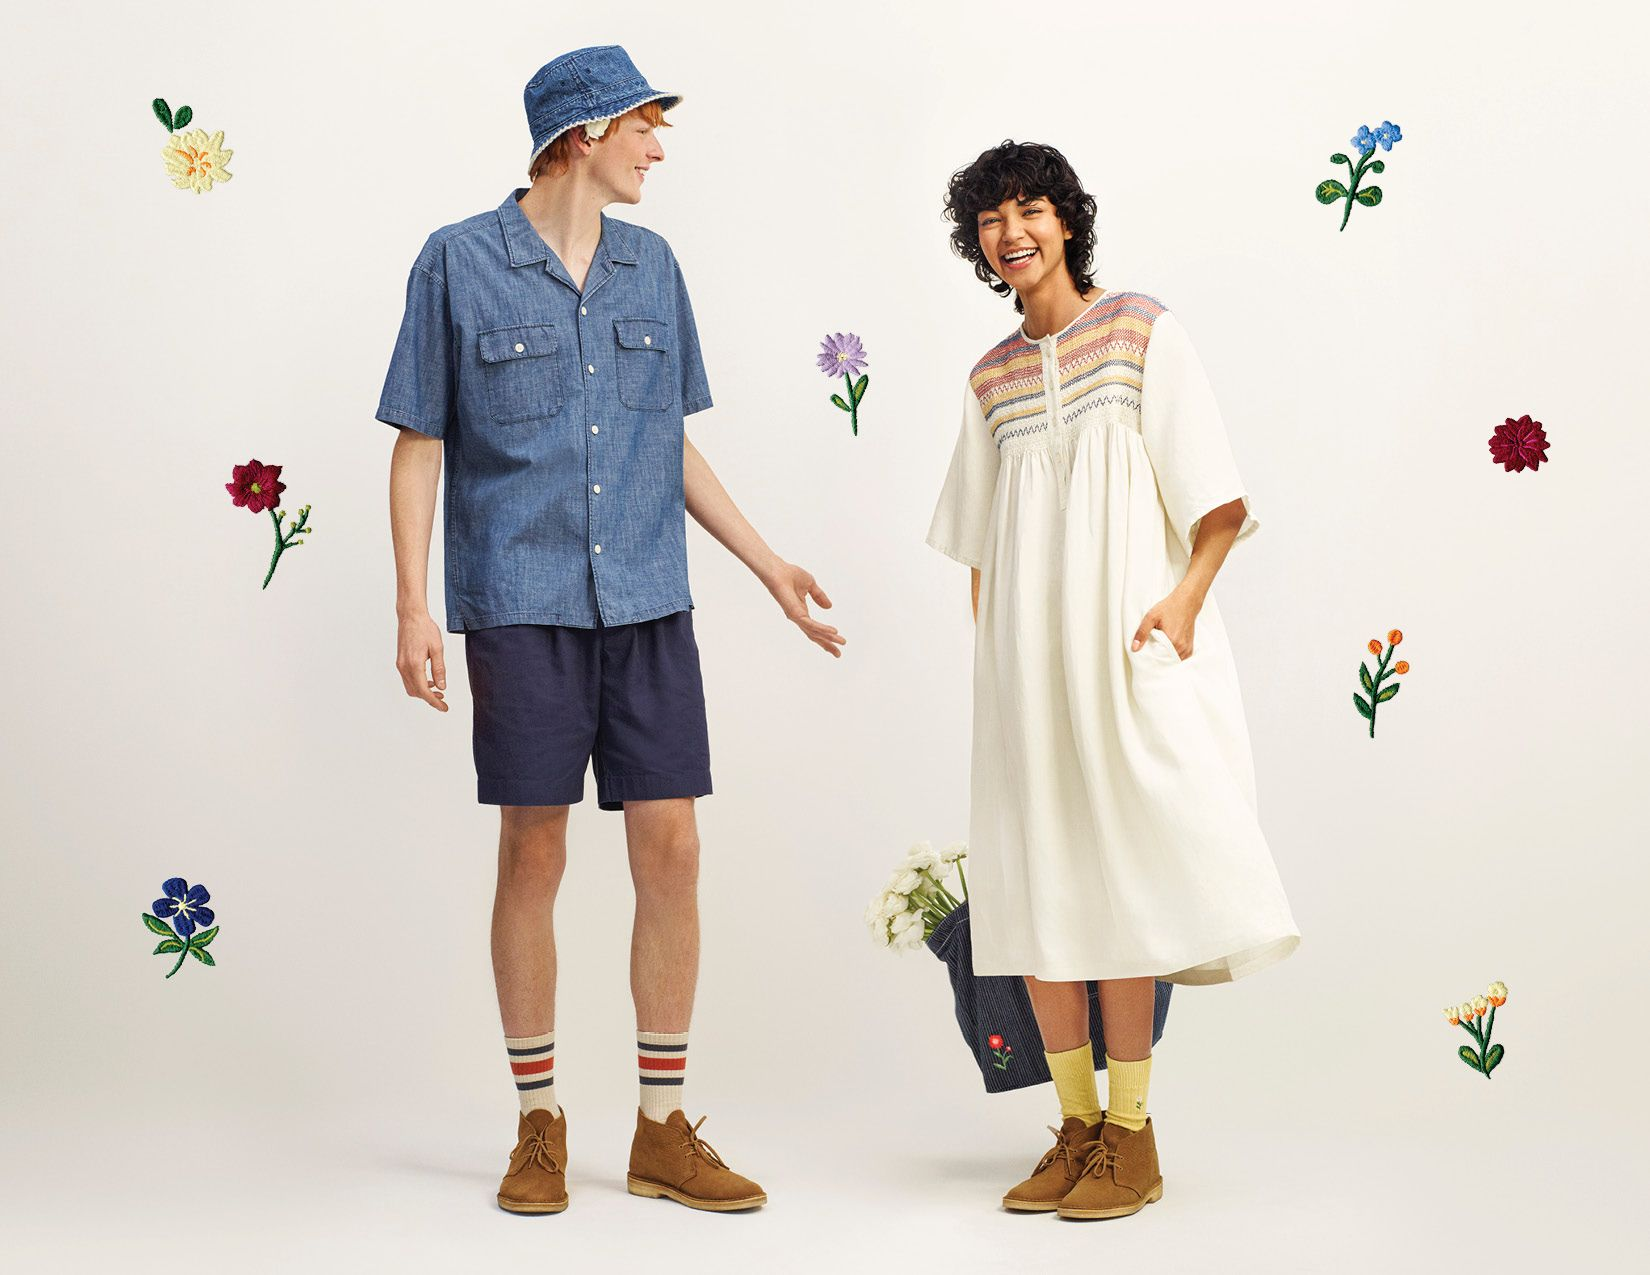 Uniqlo And JW Anderson Reunite For New Spring/Summer 2021 Collection